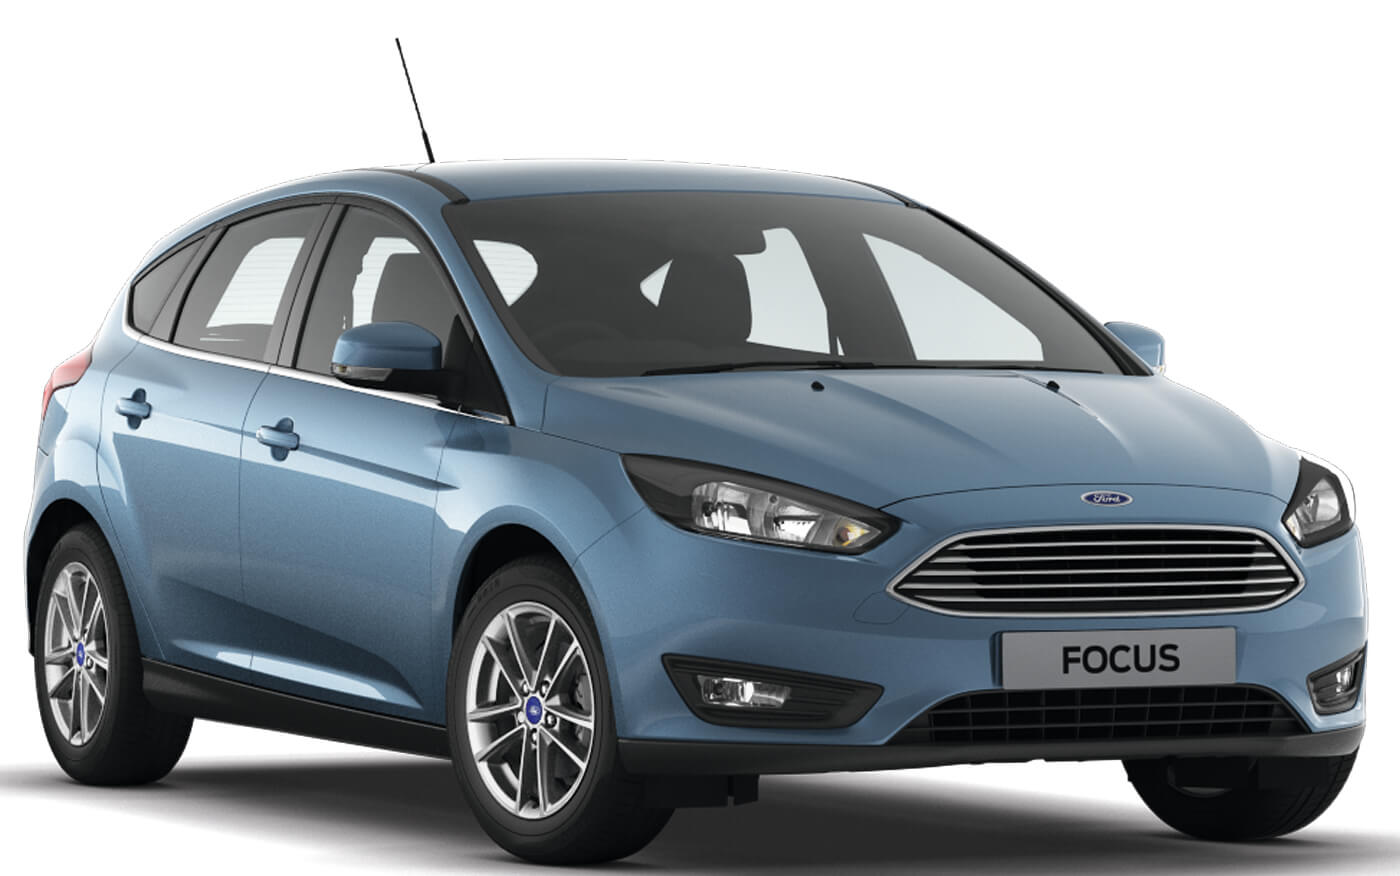 ford focus 1 5 tdci zetec edition 120ps powershift for sale. Black Bedroom Furniture Sets. Home Design Ideas